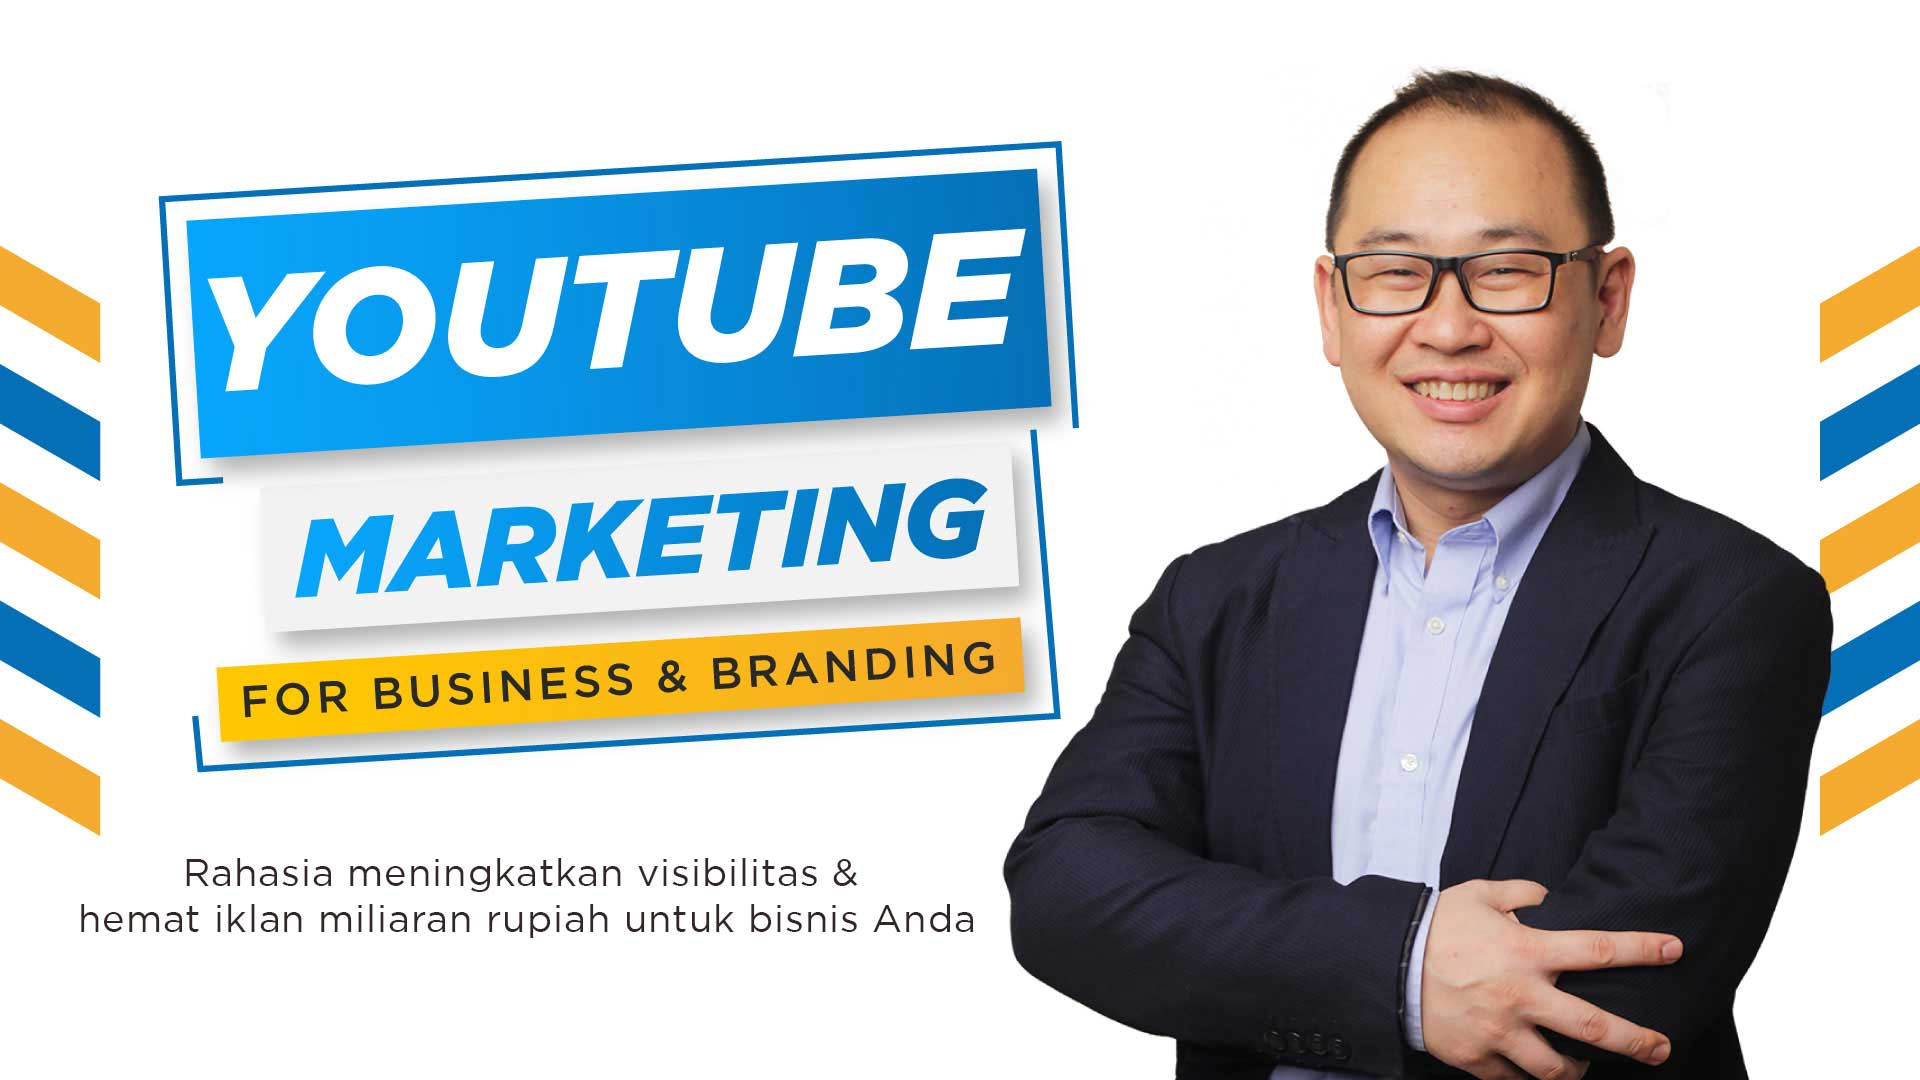 youtube marketing webinar